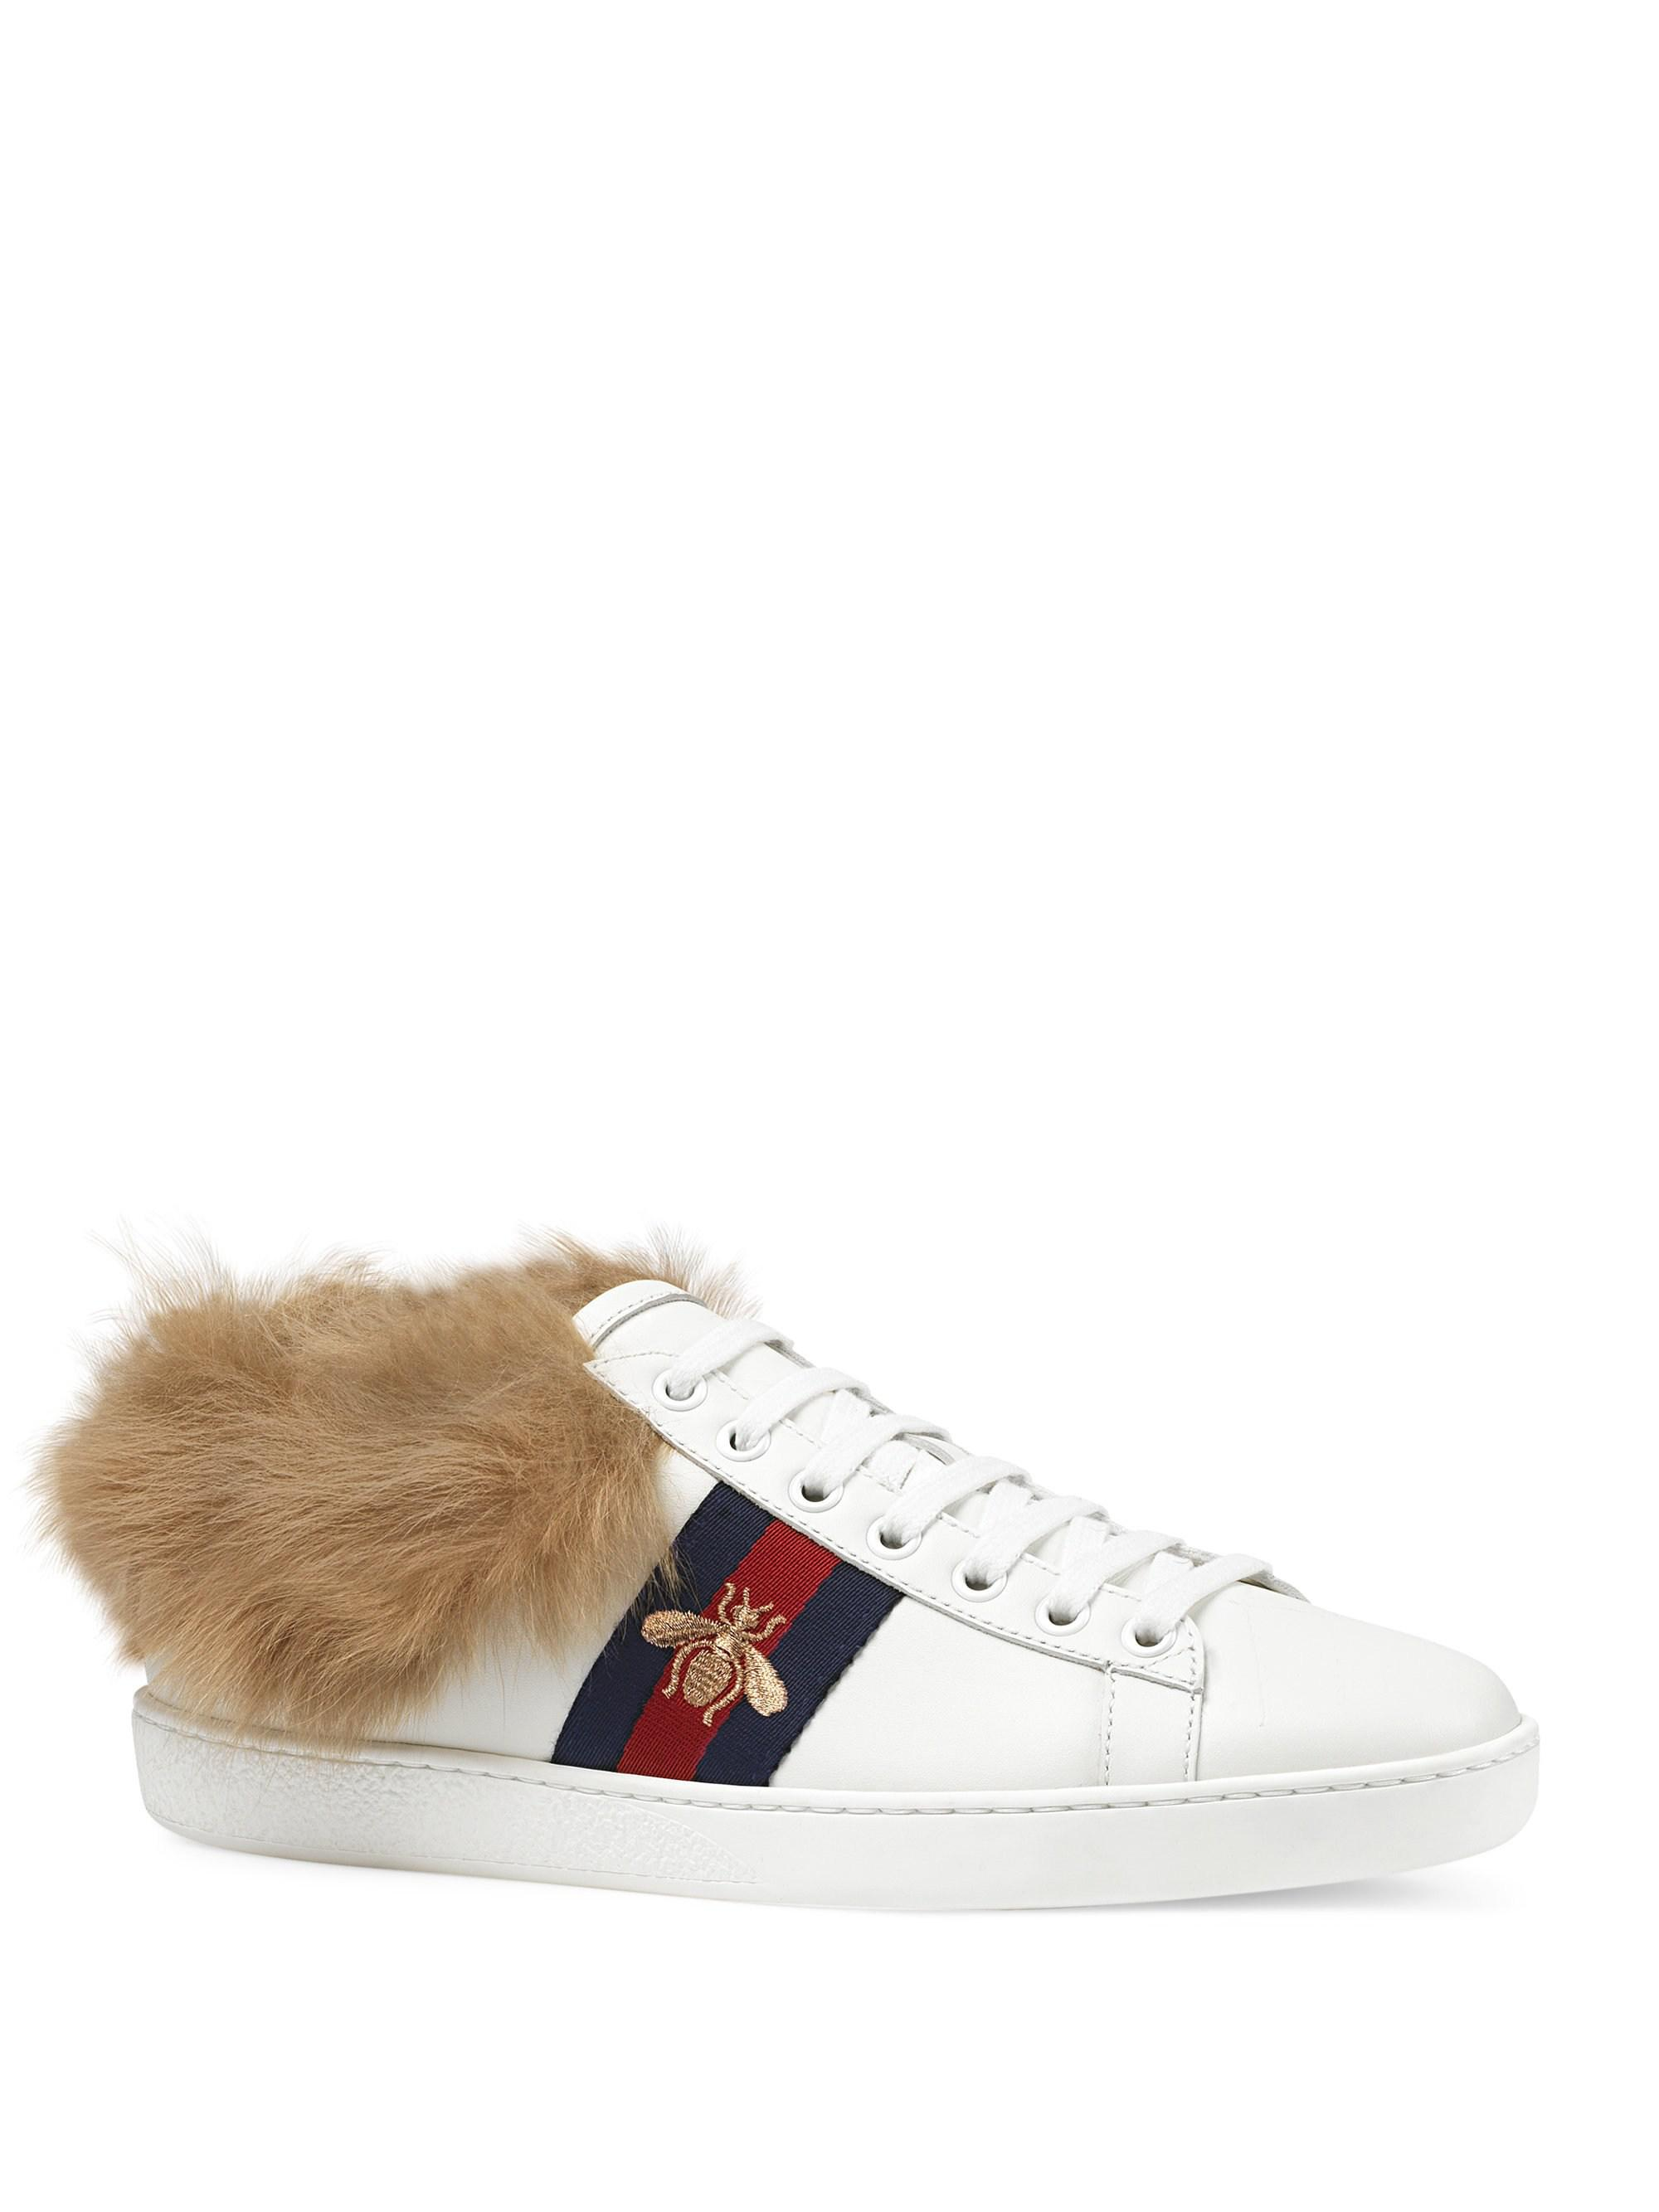 75b2cefa4f3 Gucci Women s New Ace Sneakers With Fur - White - Size 37.5 (7.5) in ...